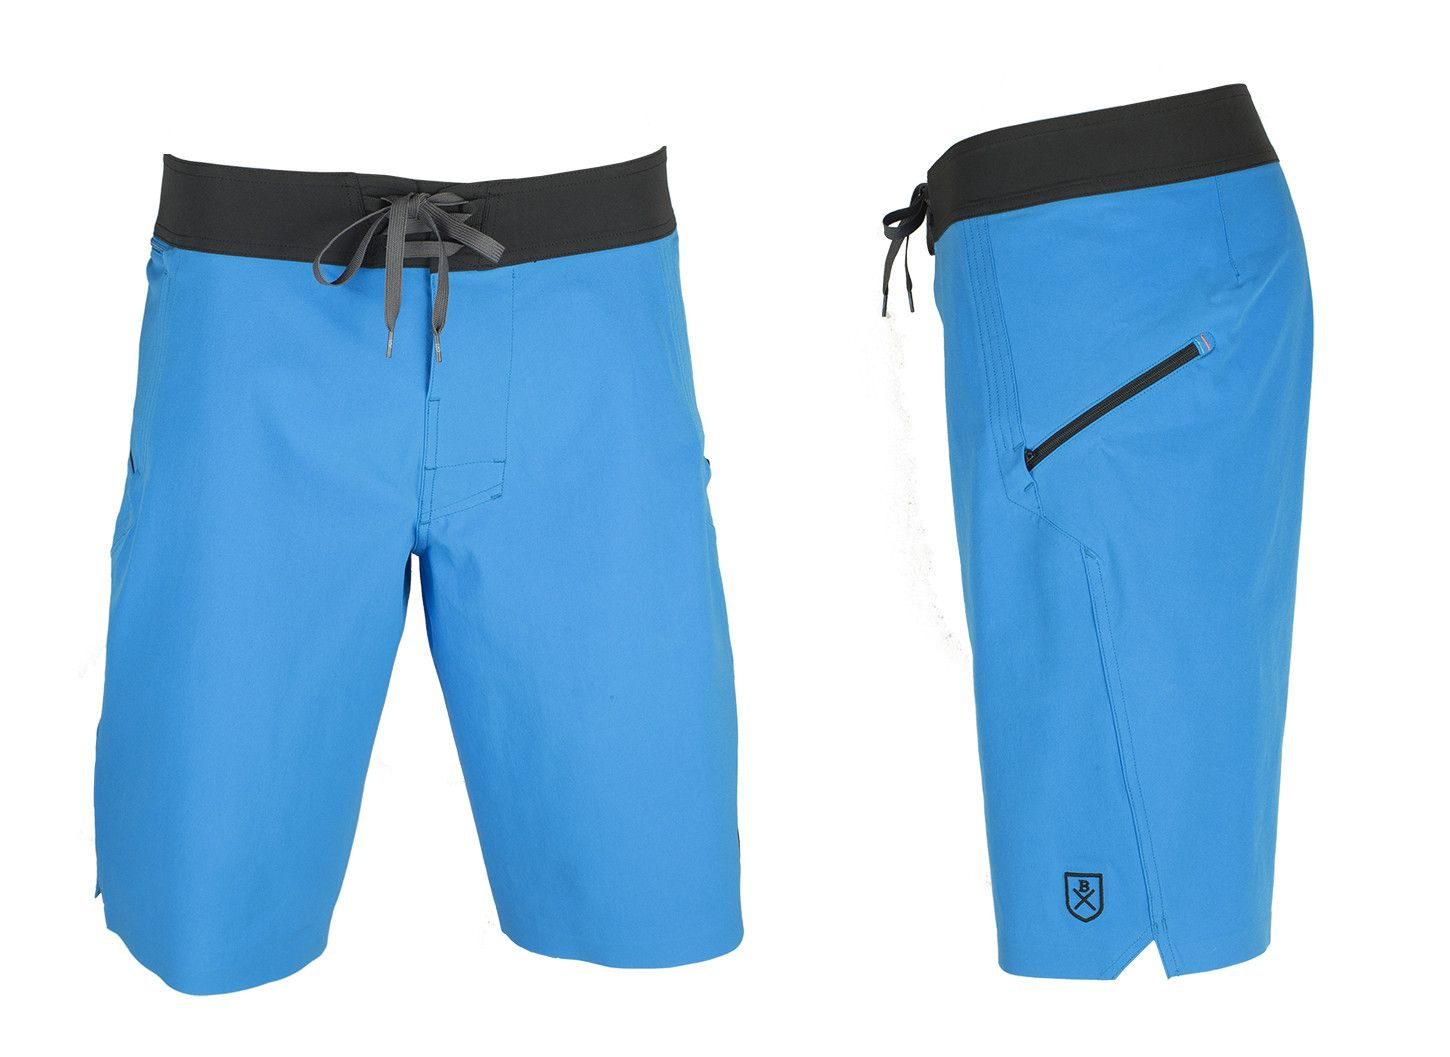 6abfbfdcd8 The Spartan Board Shorts in Pacific Blue & Almost Black - The World's  Finest Waterwear